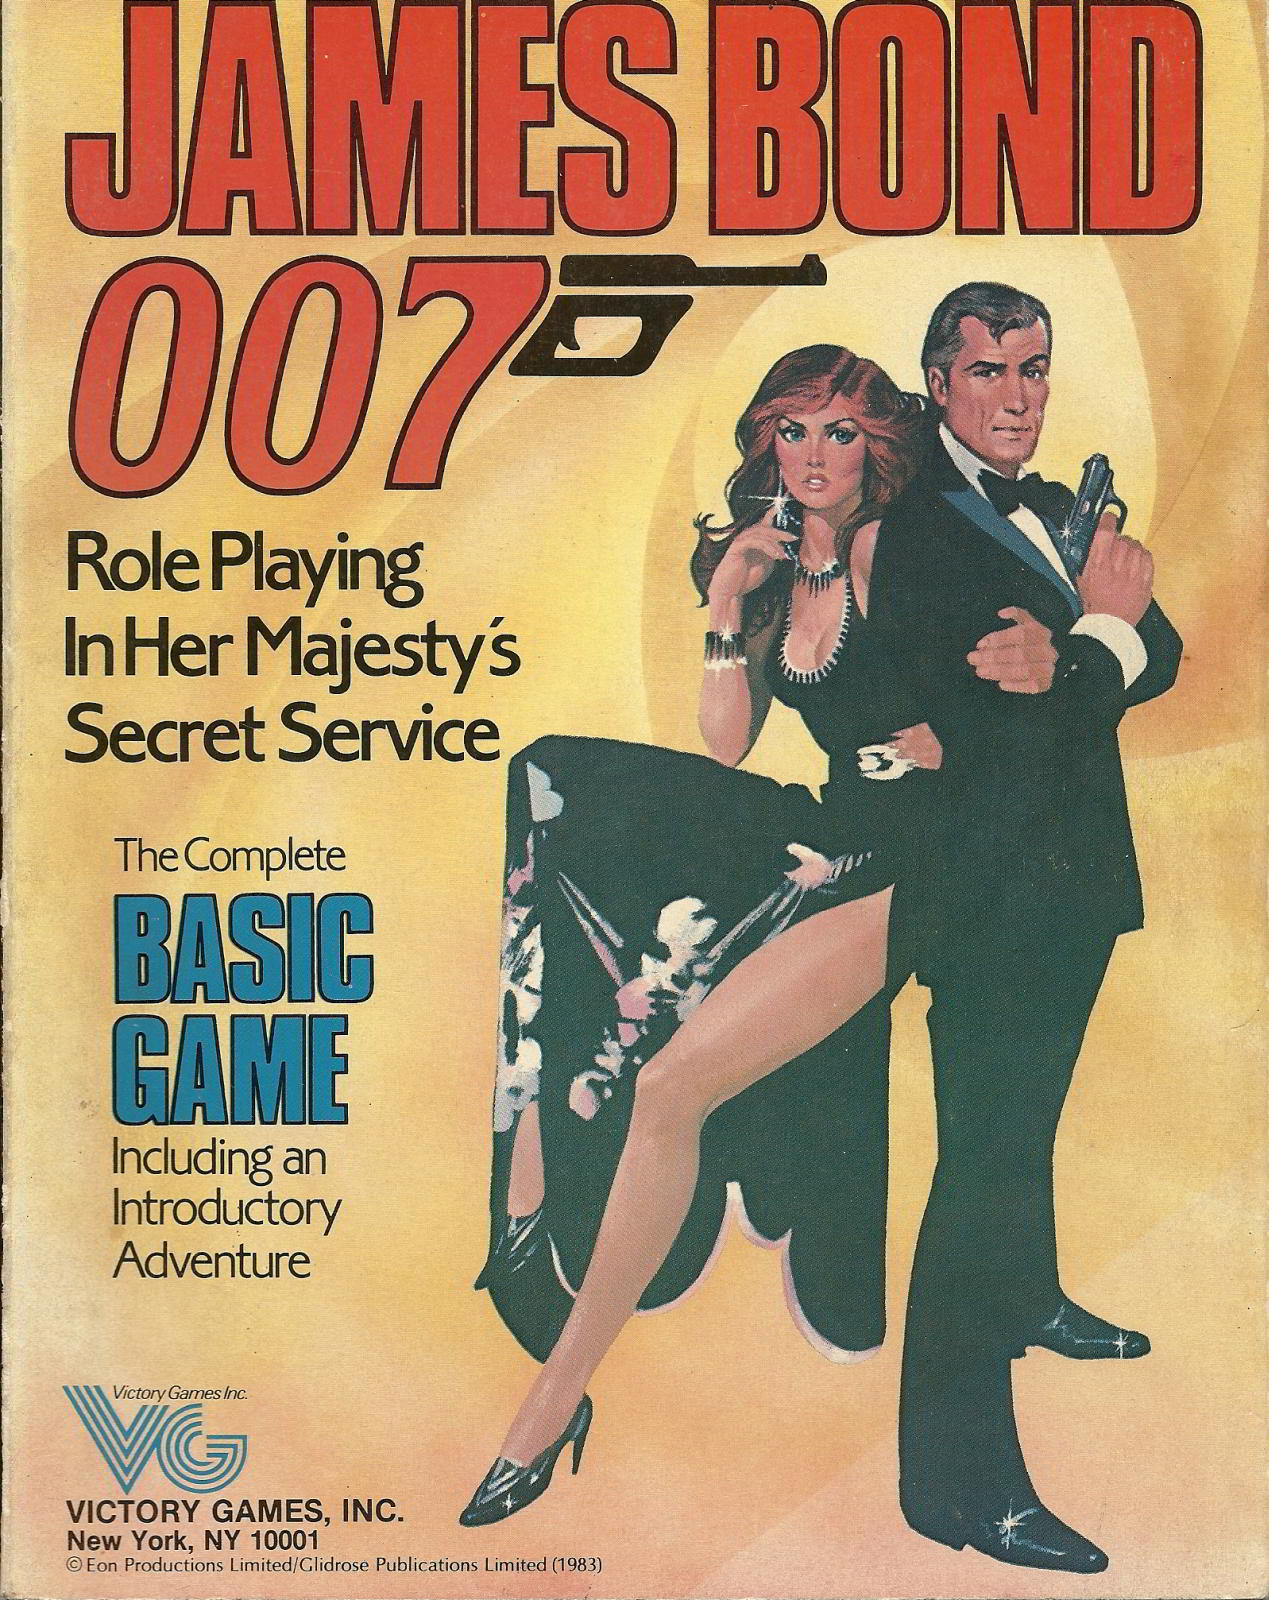 James Bond 007 Manual Cover